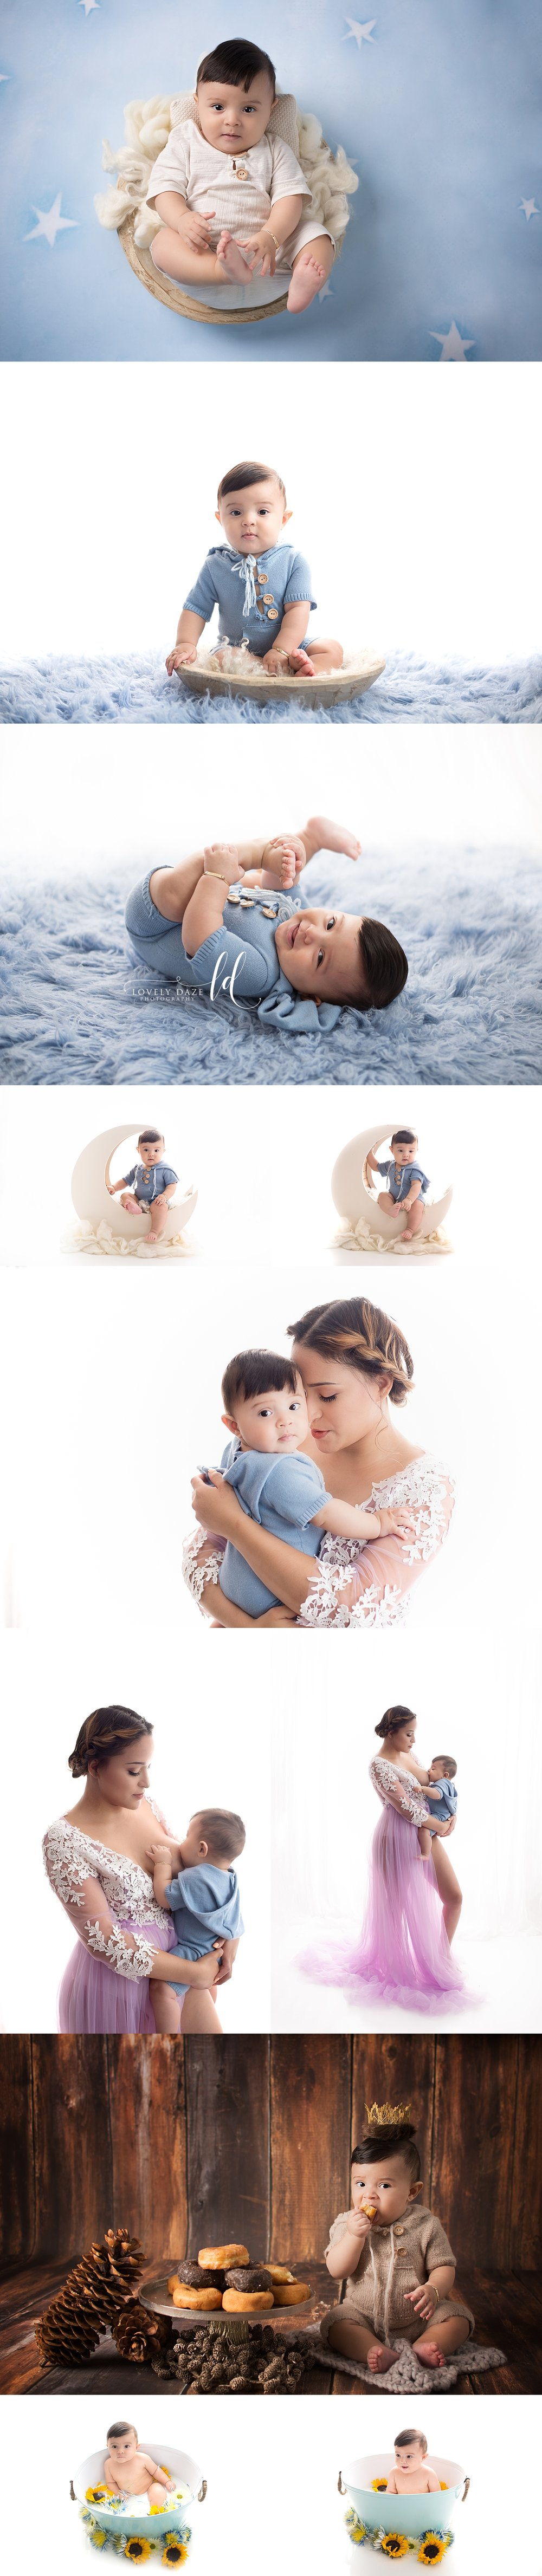 best nj baby photographer baby boy 6 month blue mommy and me lovely daze photography.jpg